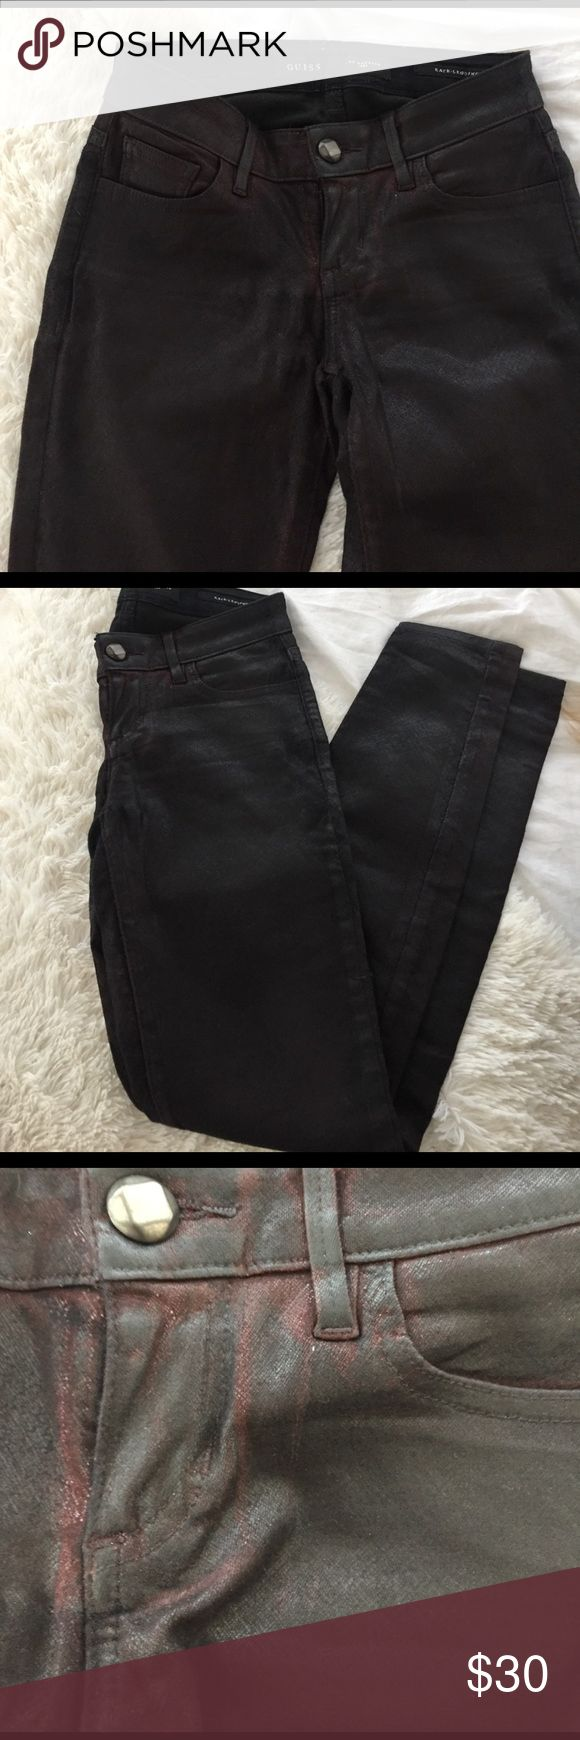 GUESS Kate Oxblood Jeans Gorgeous dark maroon skinny jeans with a sheen and ample stretch for comfort. Worn only a few times, great condition. Guess Jeans Skinny